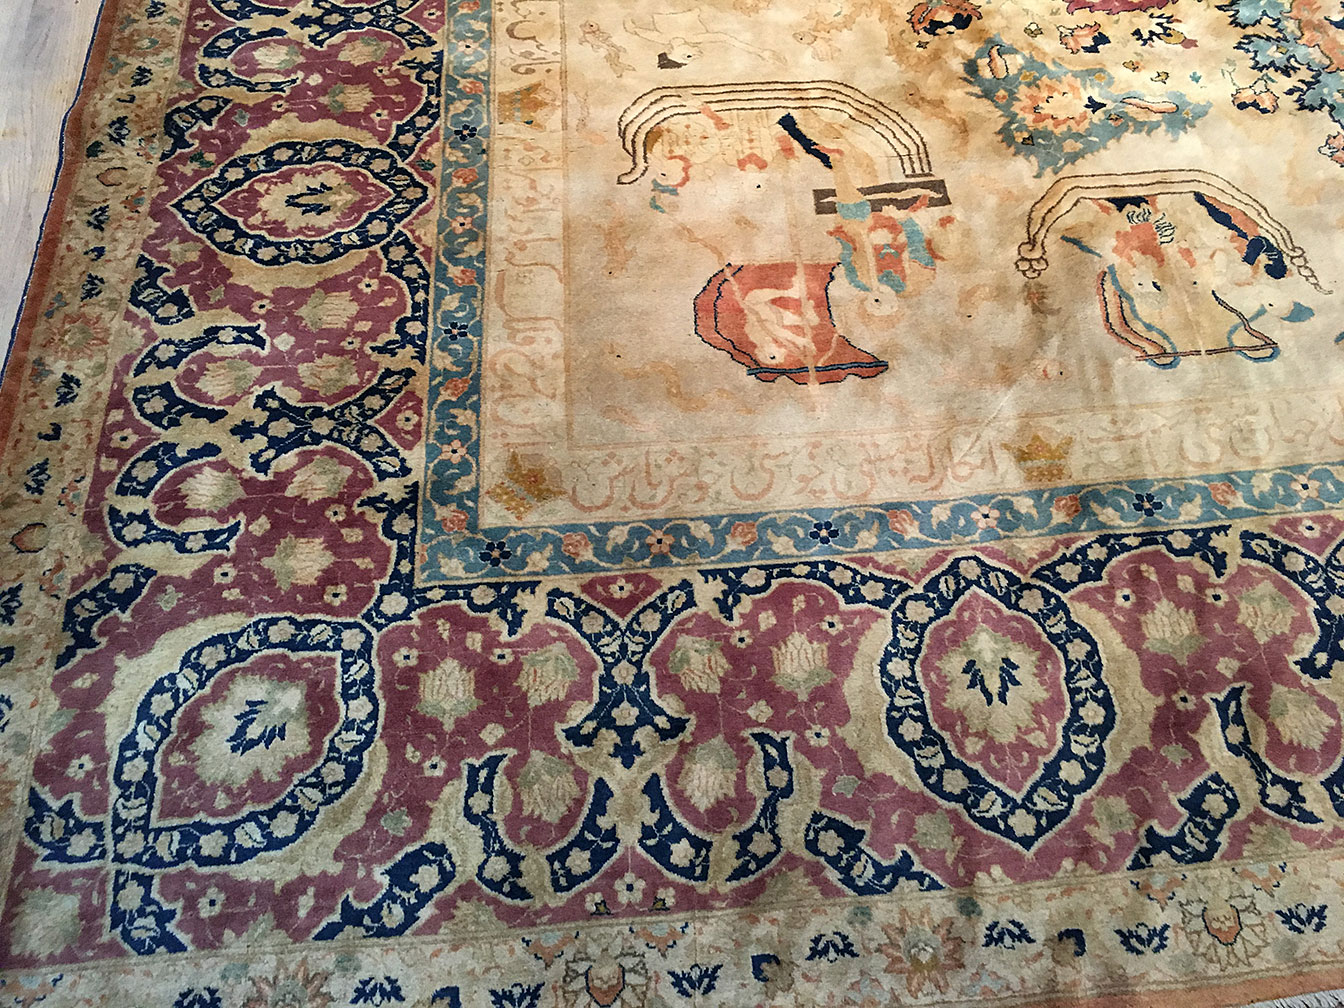 Antique tabriz Carpet - # 53070